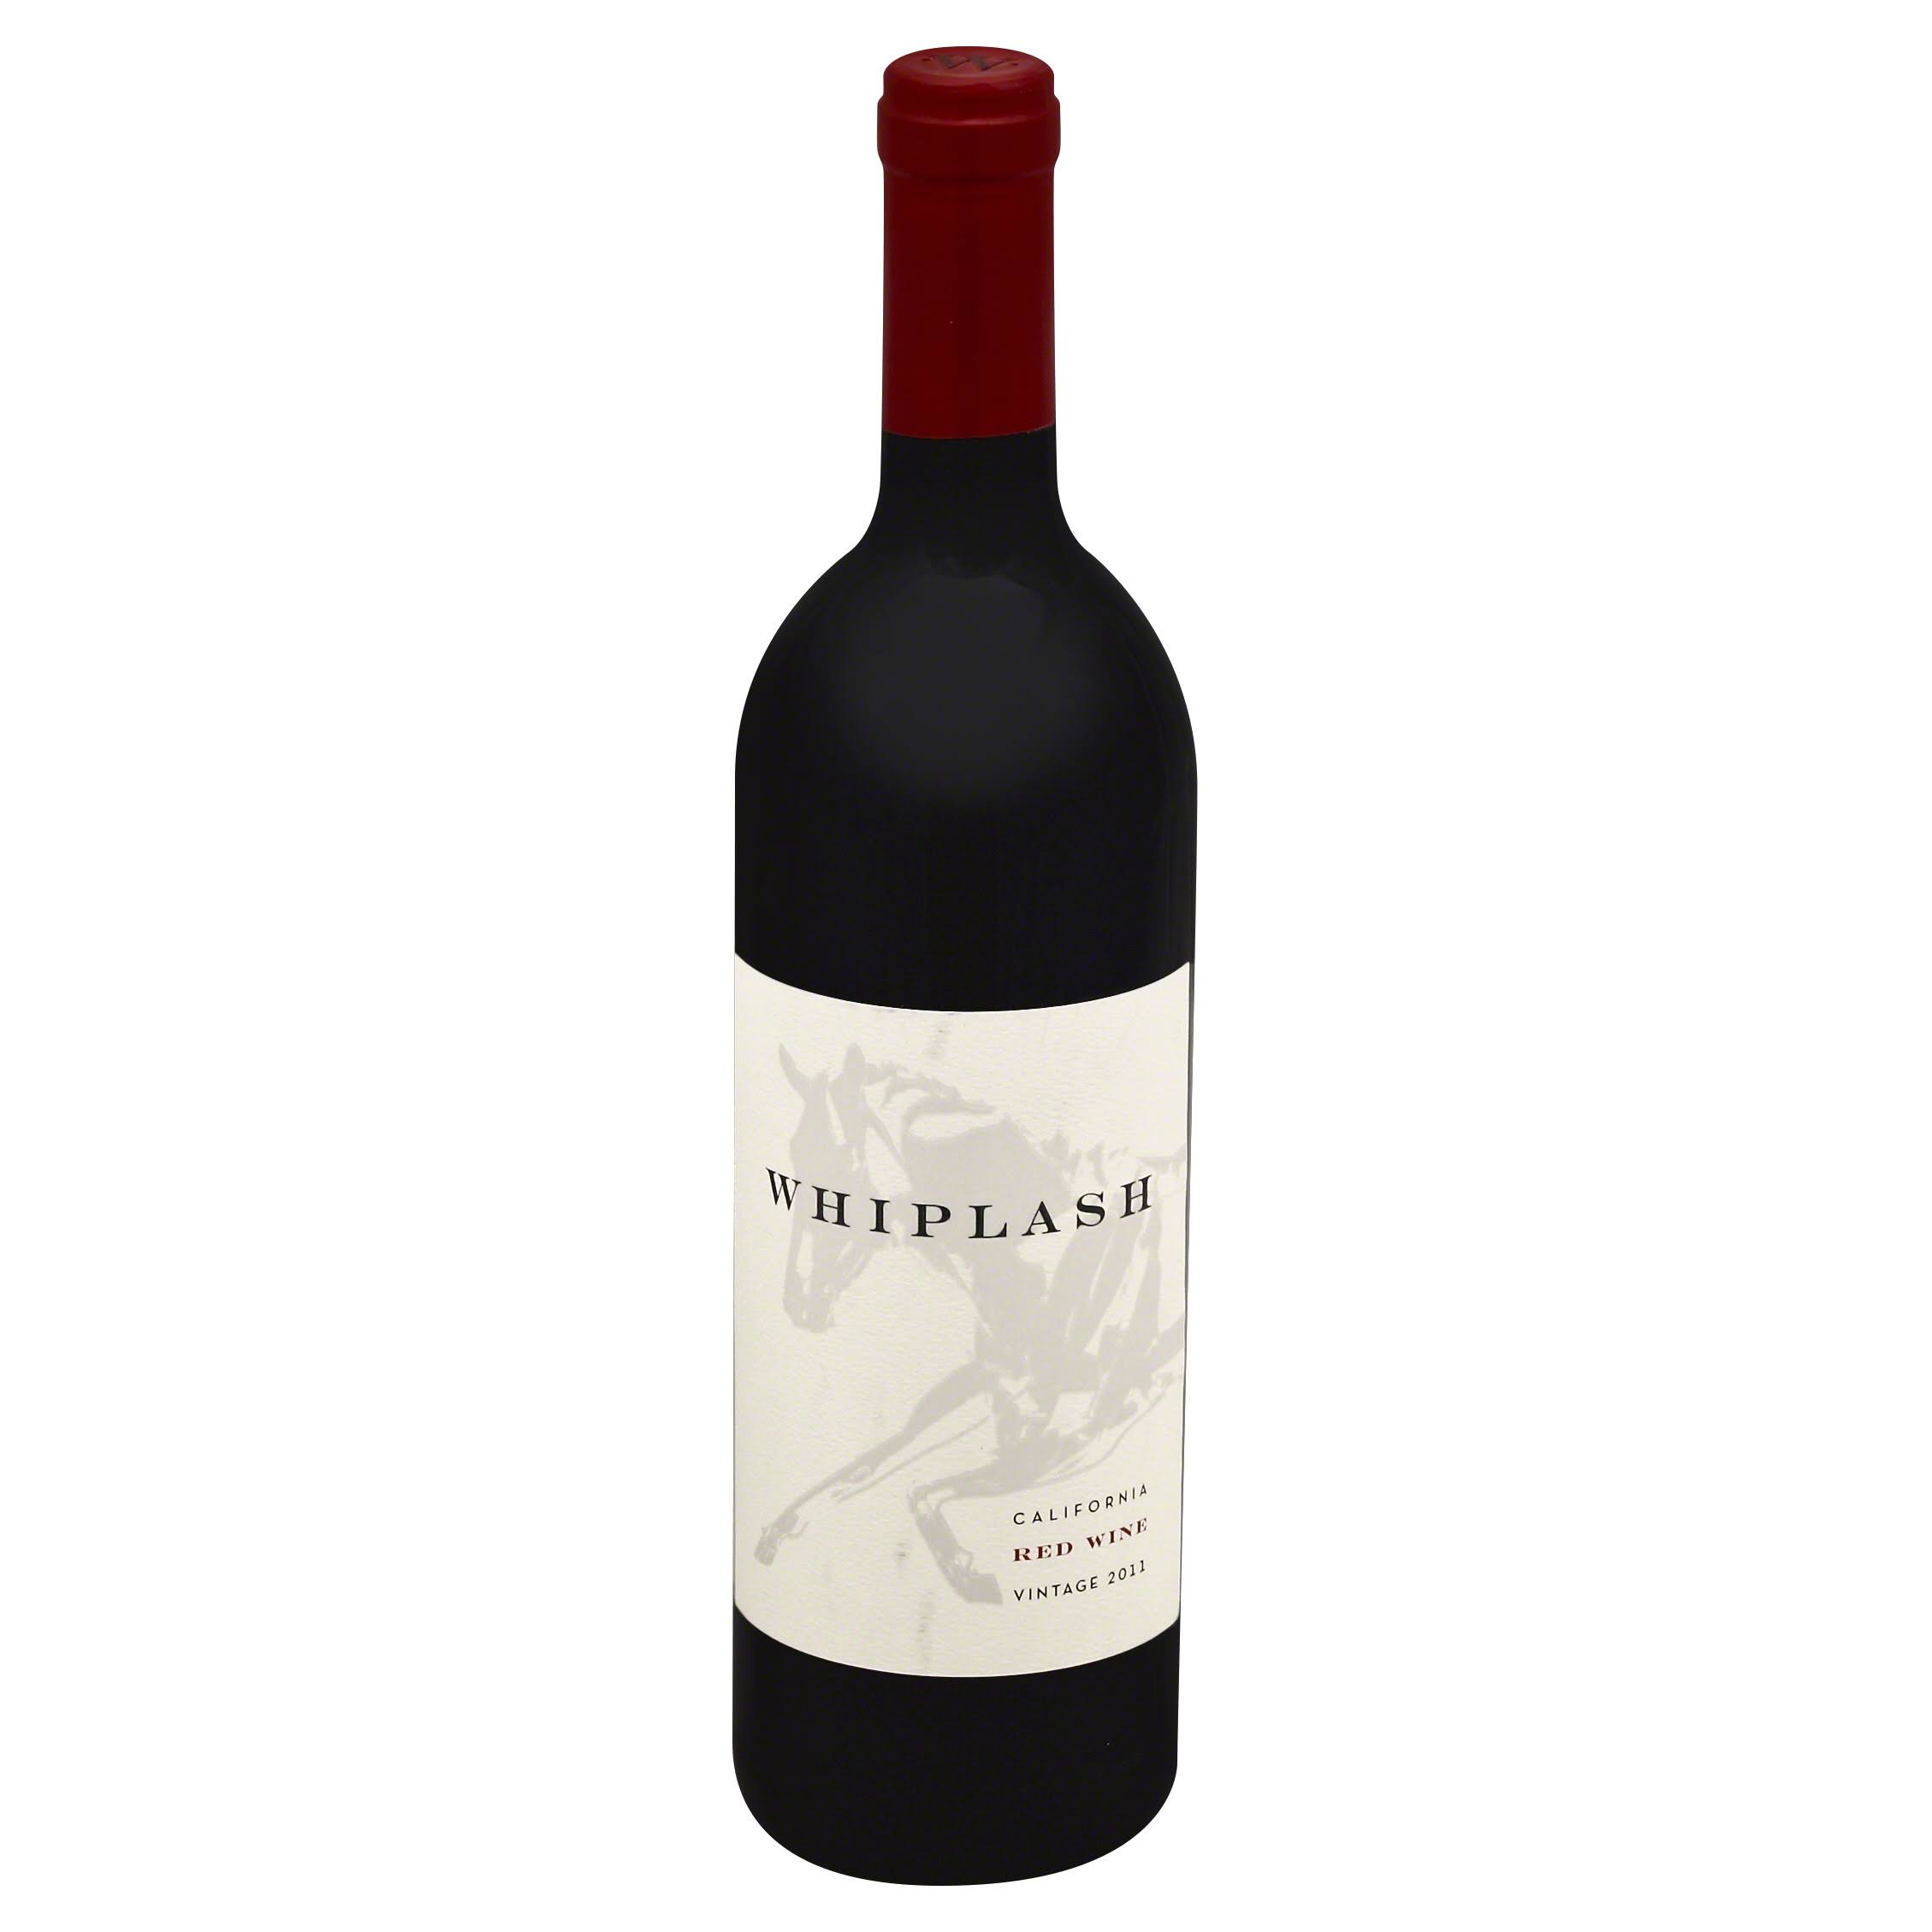 Whiplash Red Wine, Napa Valley, 2011 - 750 ml